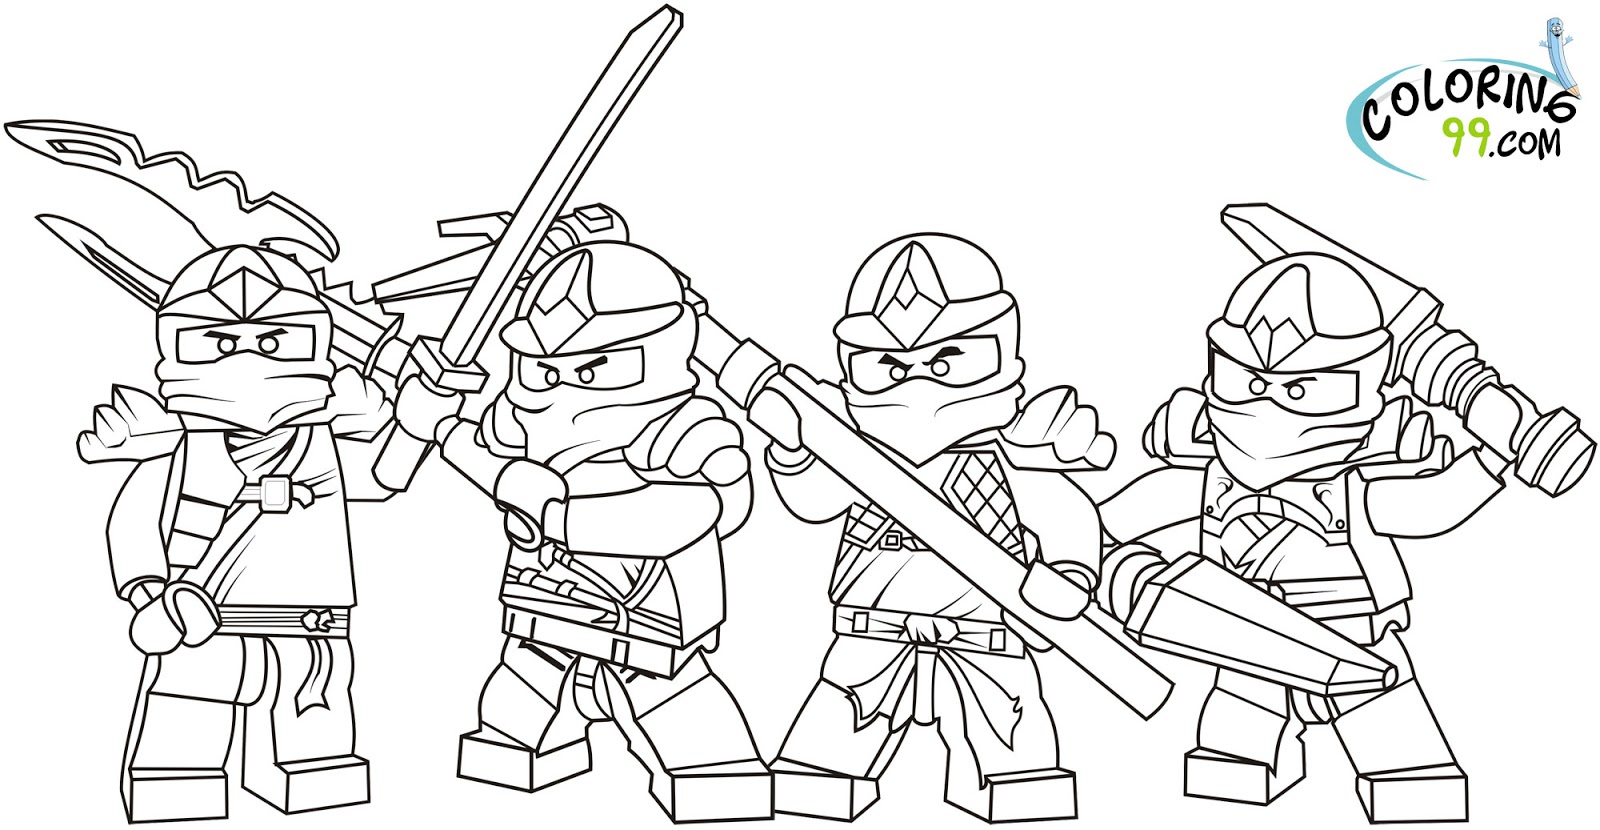 lego dowloadable coloring pages - photo#4